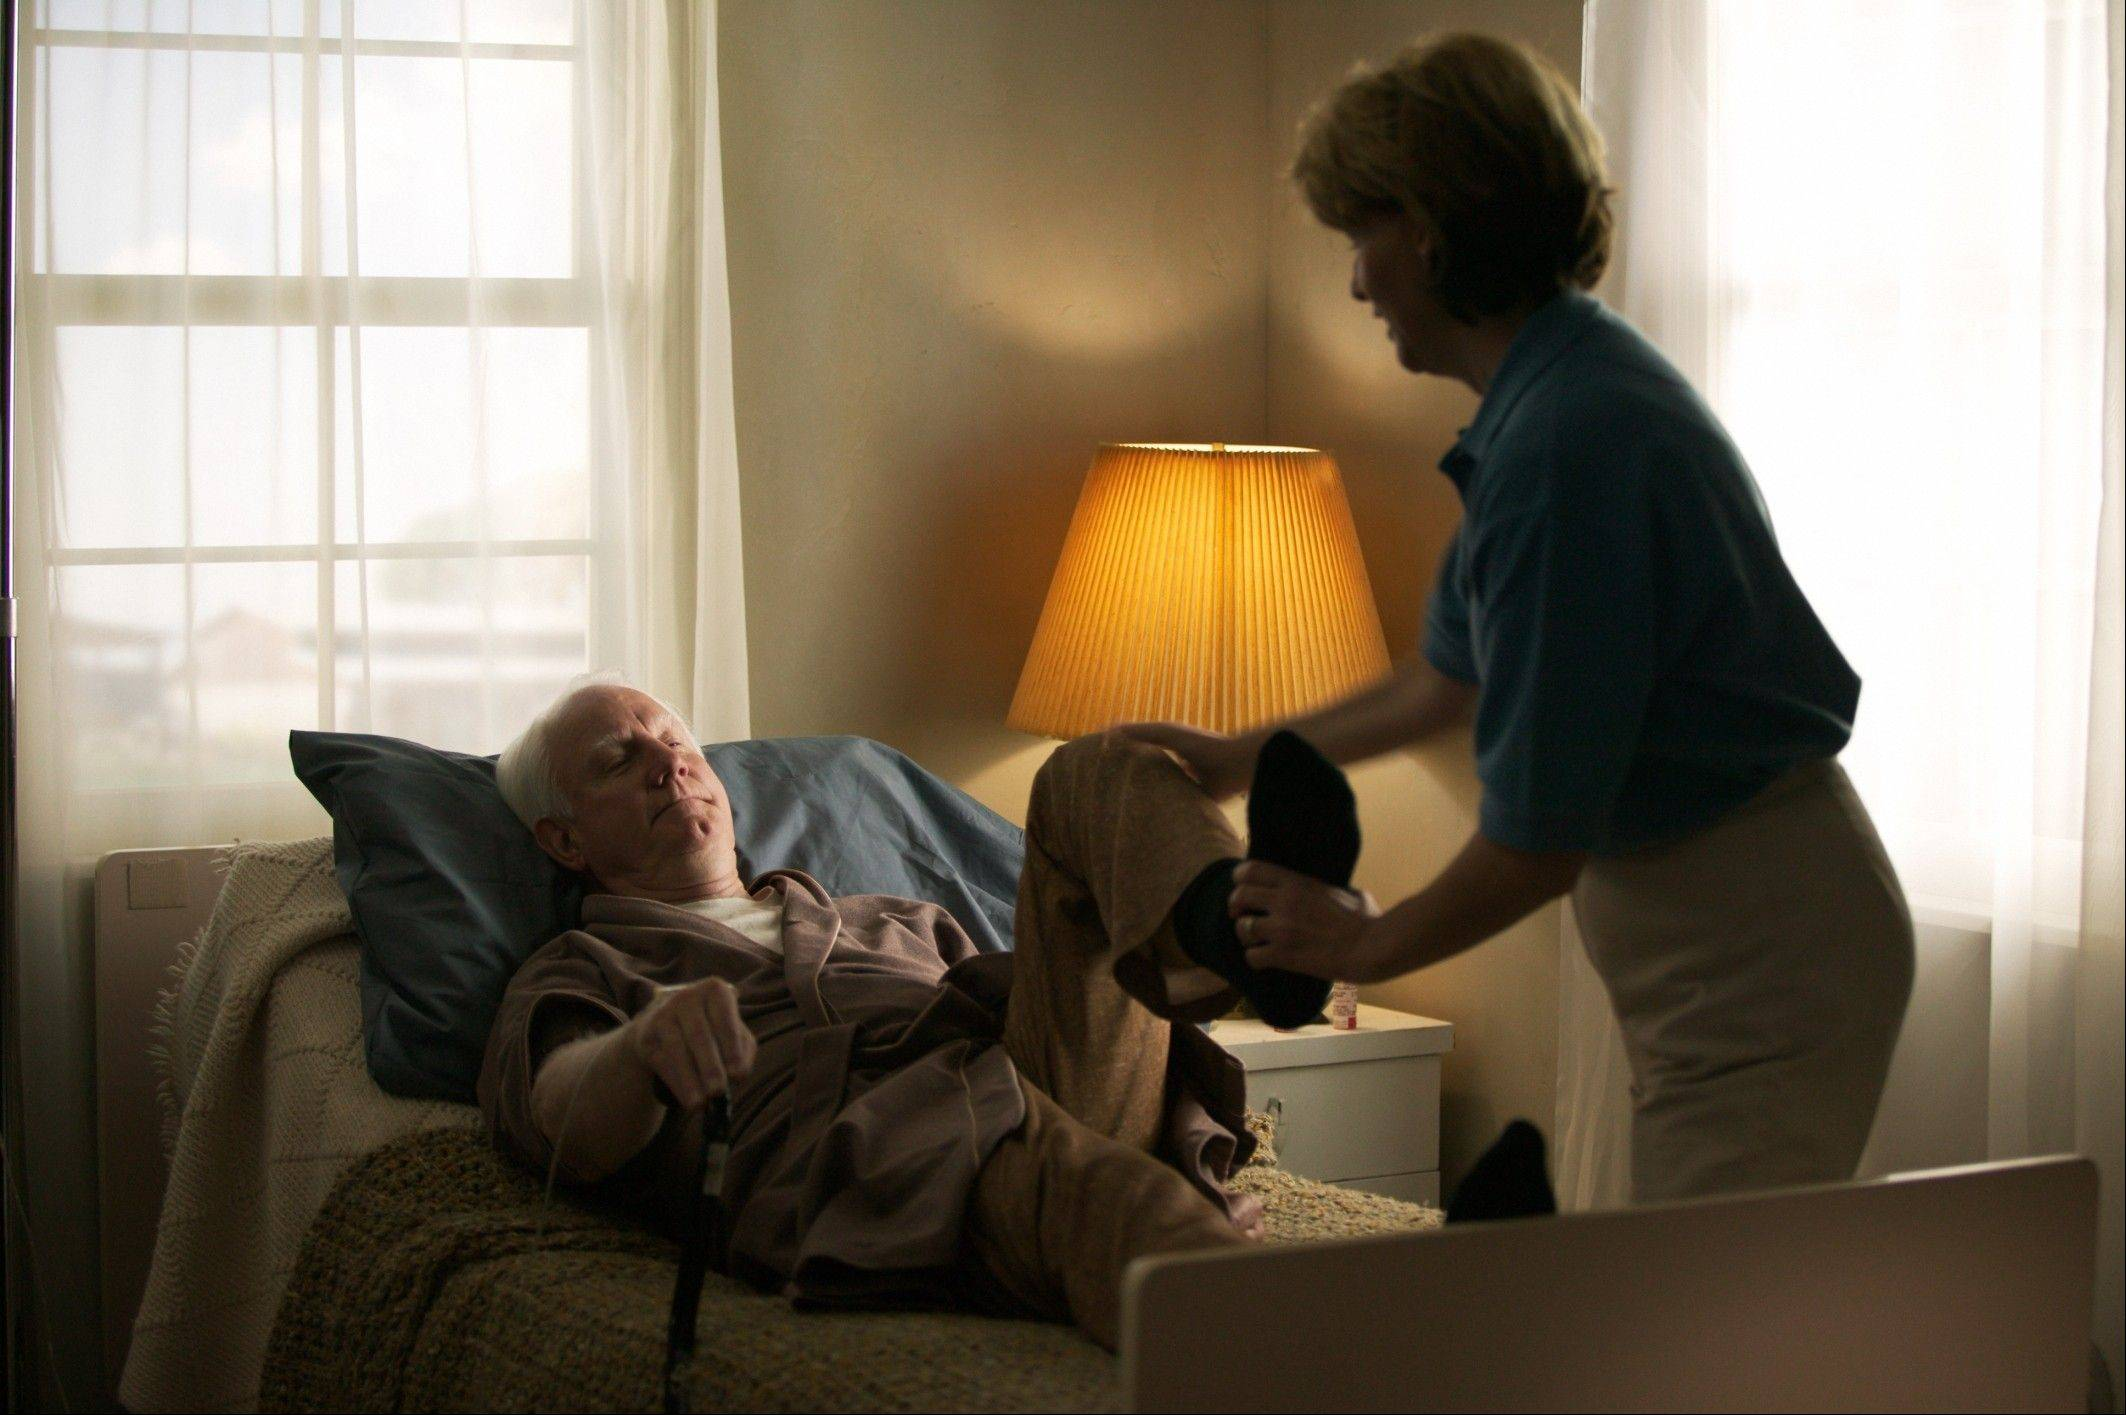 Hospice care among the elderly doubled to about 40 percent in the past decade, according to a study in the Journal of the American Medical Association. For many, the transition to hospice came only in the final few days of life, often after time in the intensive care unit and multiple hospitalizations.